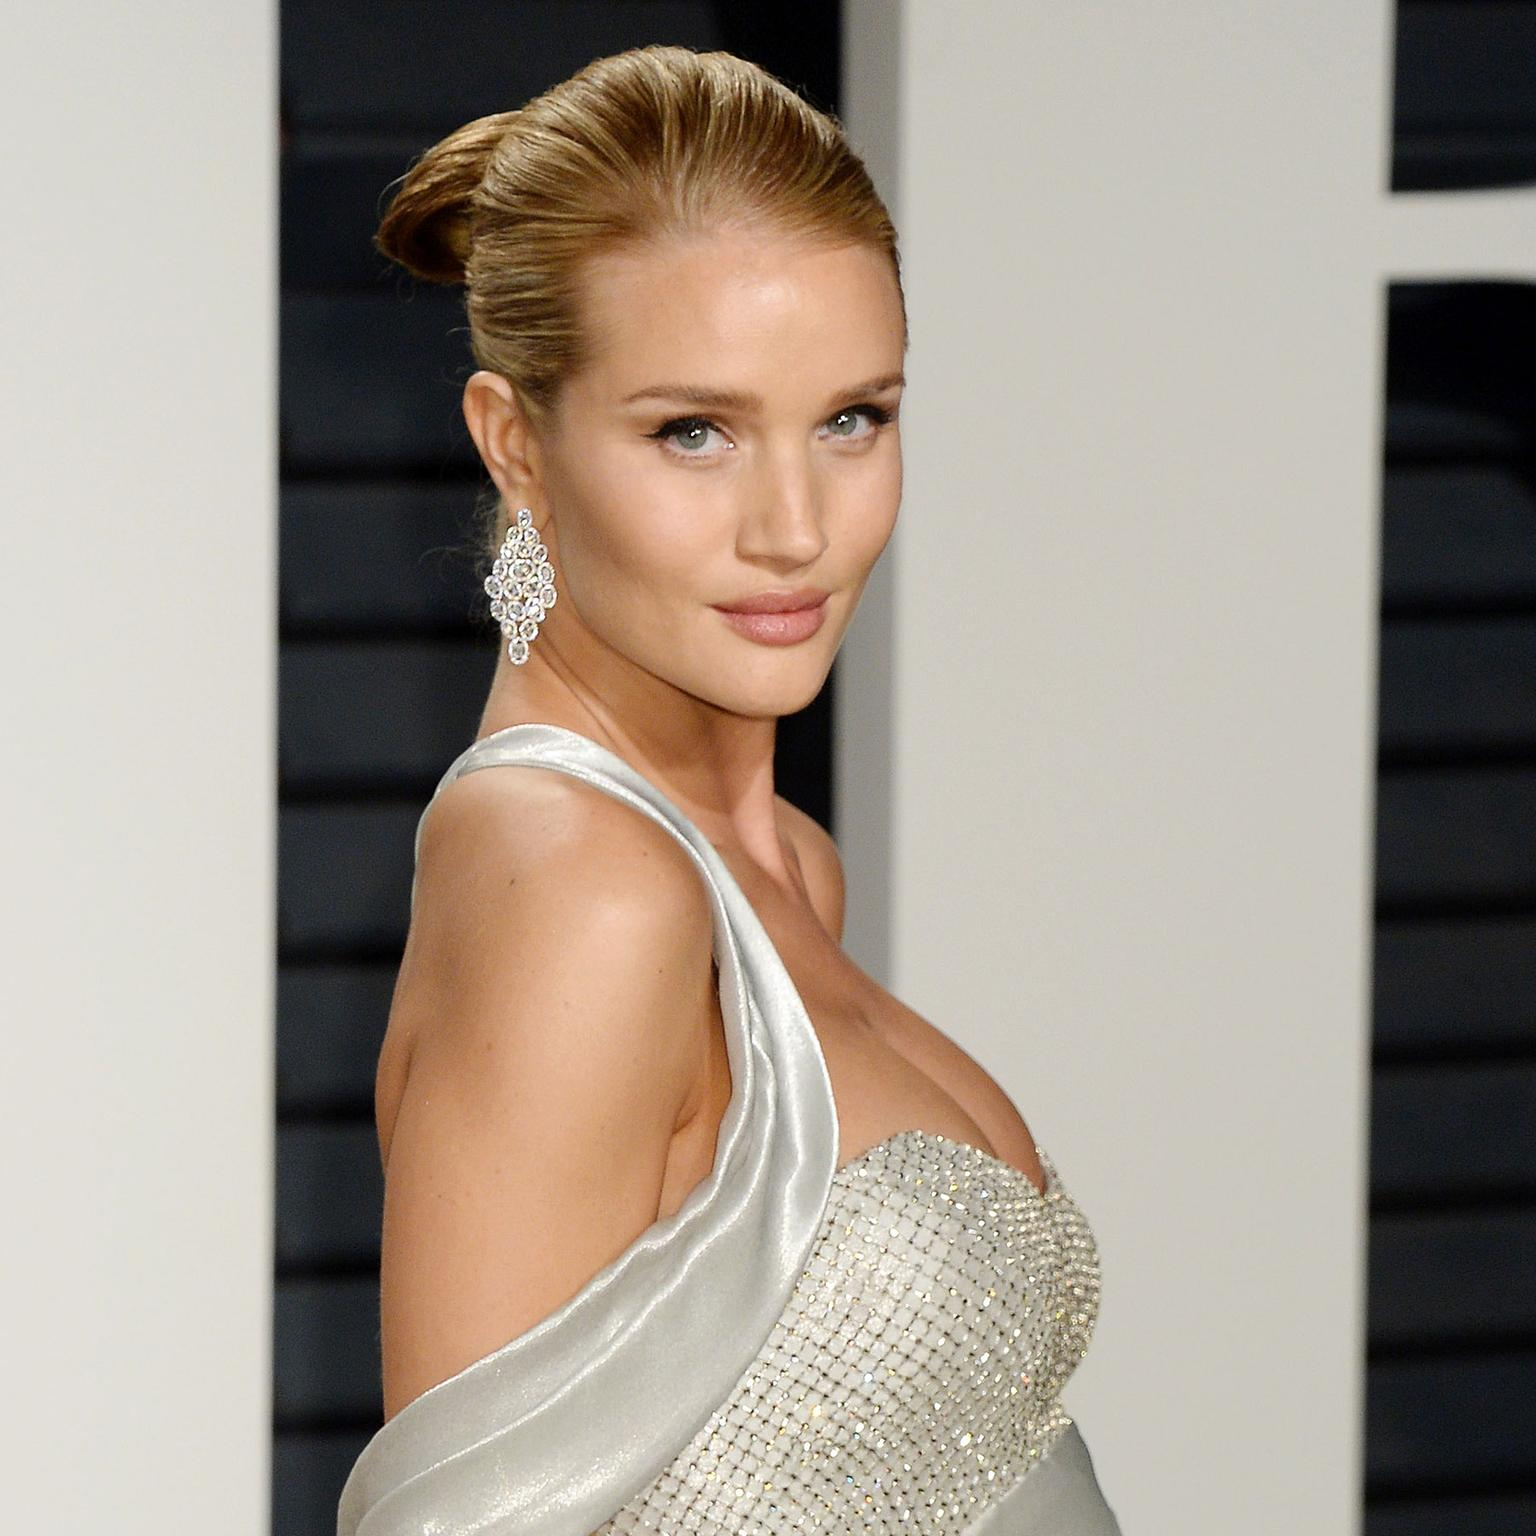 Rosie Huntington-Whiteley in Nirav Modi jewellery at the Vanity Fair Oscar party 2017